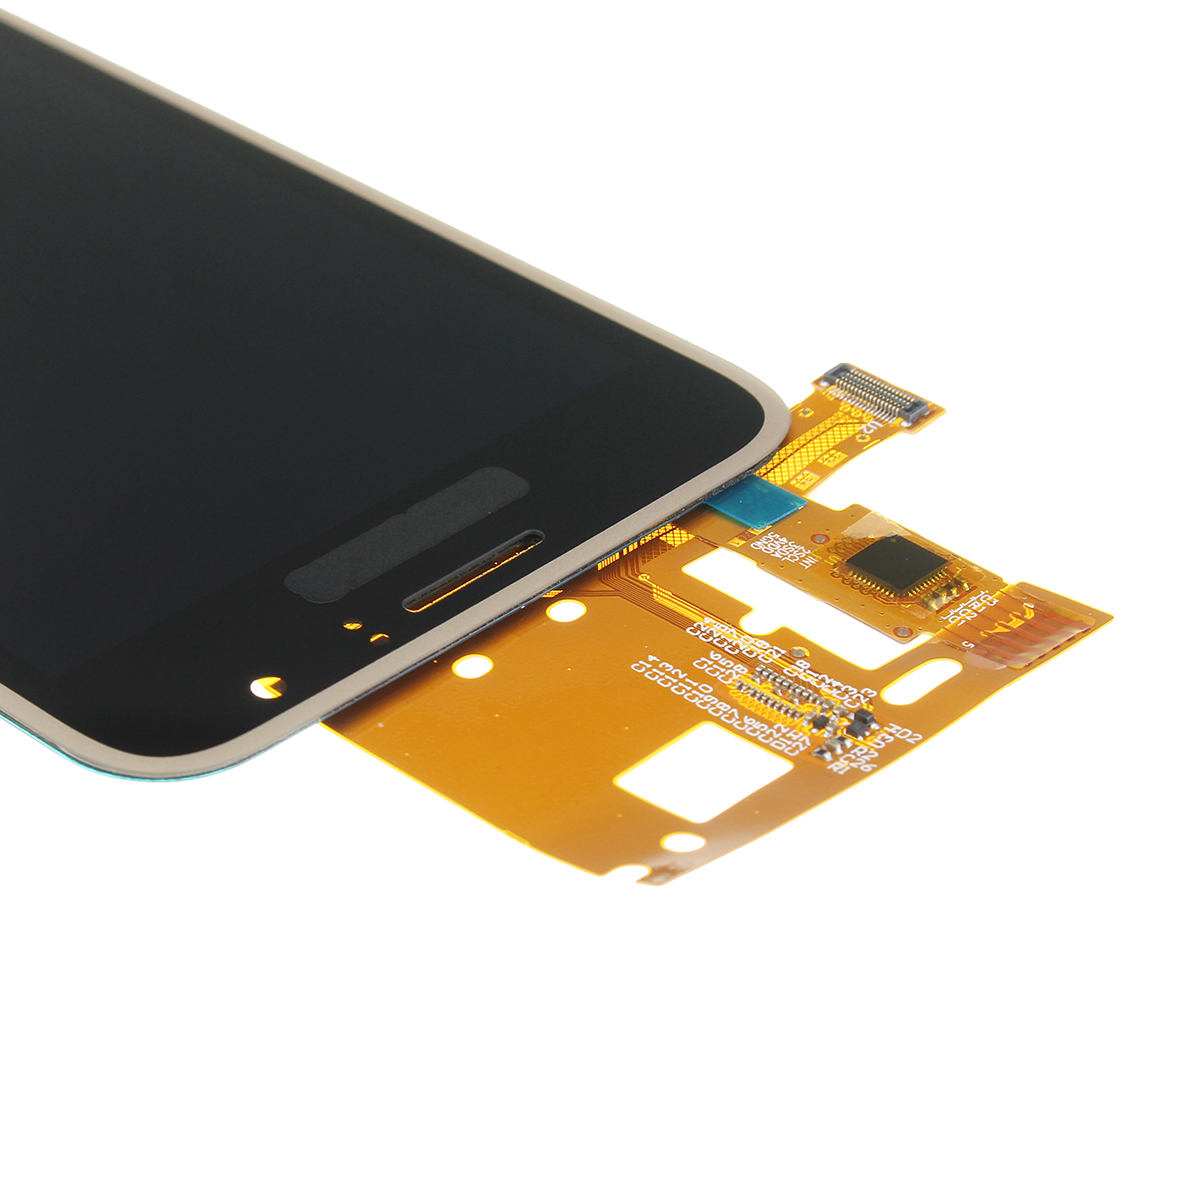 LCD Touch Screen Digitizer Assembly & Repair Tools for Samsung Galaxy J1 2016 J120F J120A J120H